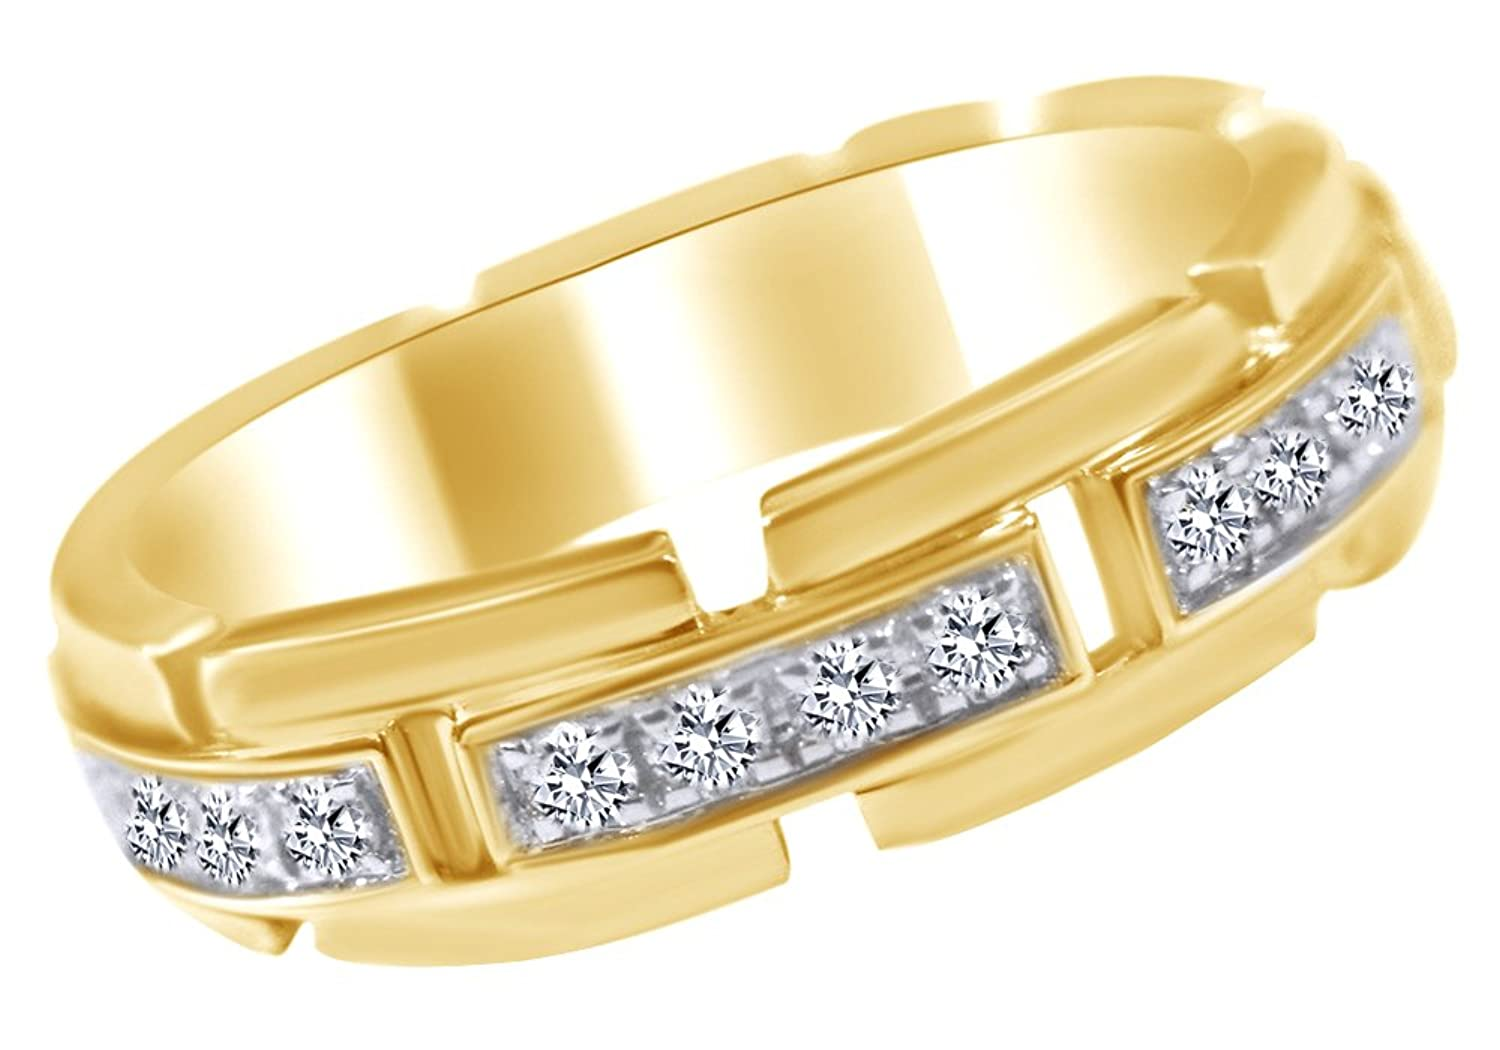 1/2 Carat White Natural Diamond Wedding Band Ring for Men in 10k Solid Gold (0.5 Cttw)